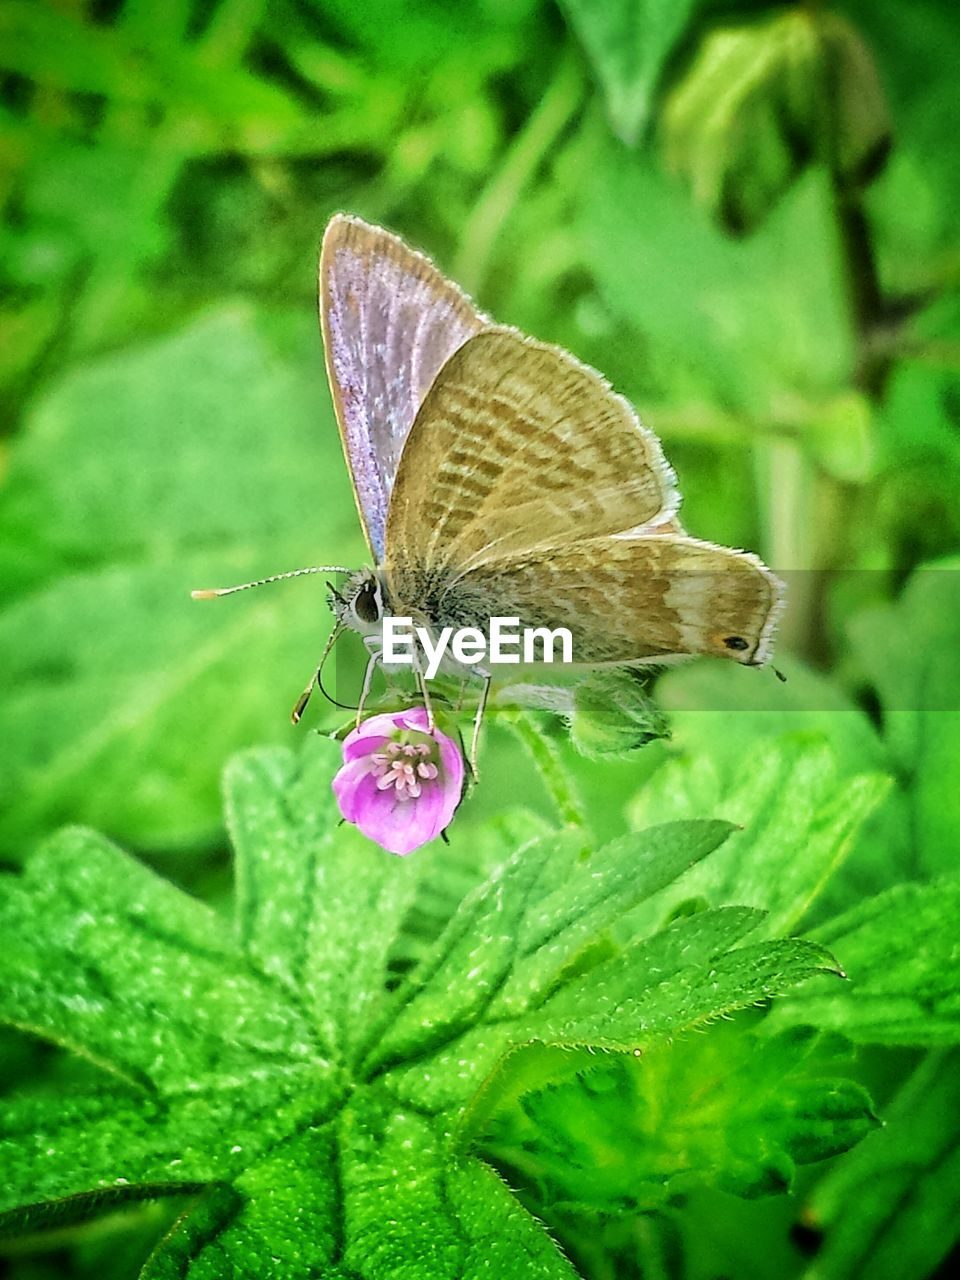 insect, animal themes, animals in the wild, one animal, leaf, butterfly, butterfly - insect, wildlife, nature, plant, green color, no people, close-up, outdoors, animal wildlife, growth, full length, perching, beauty in nature, fragility, day, spread wings, freshness